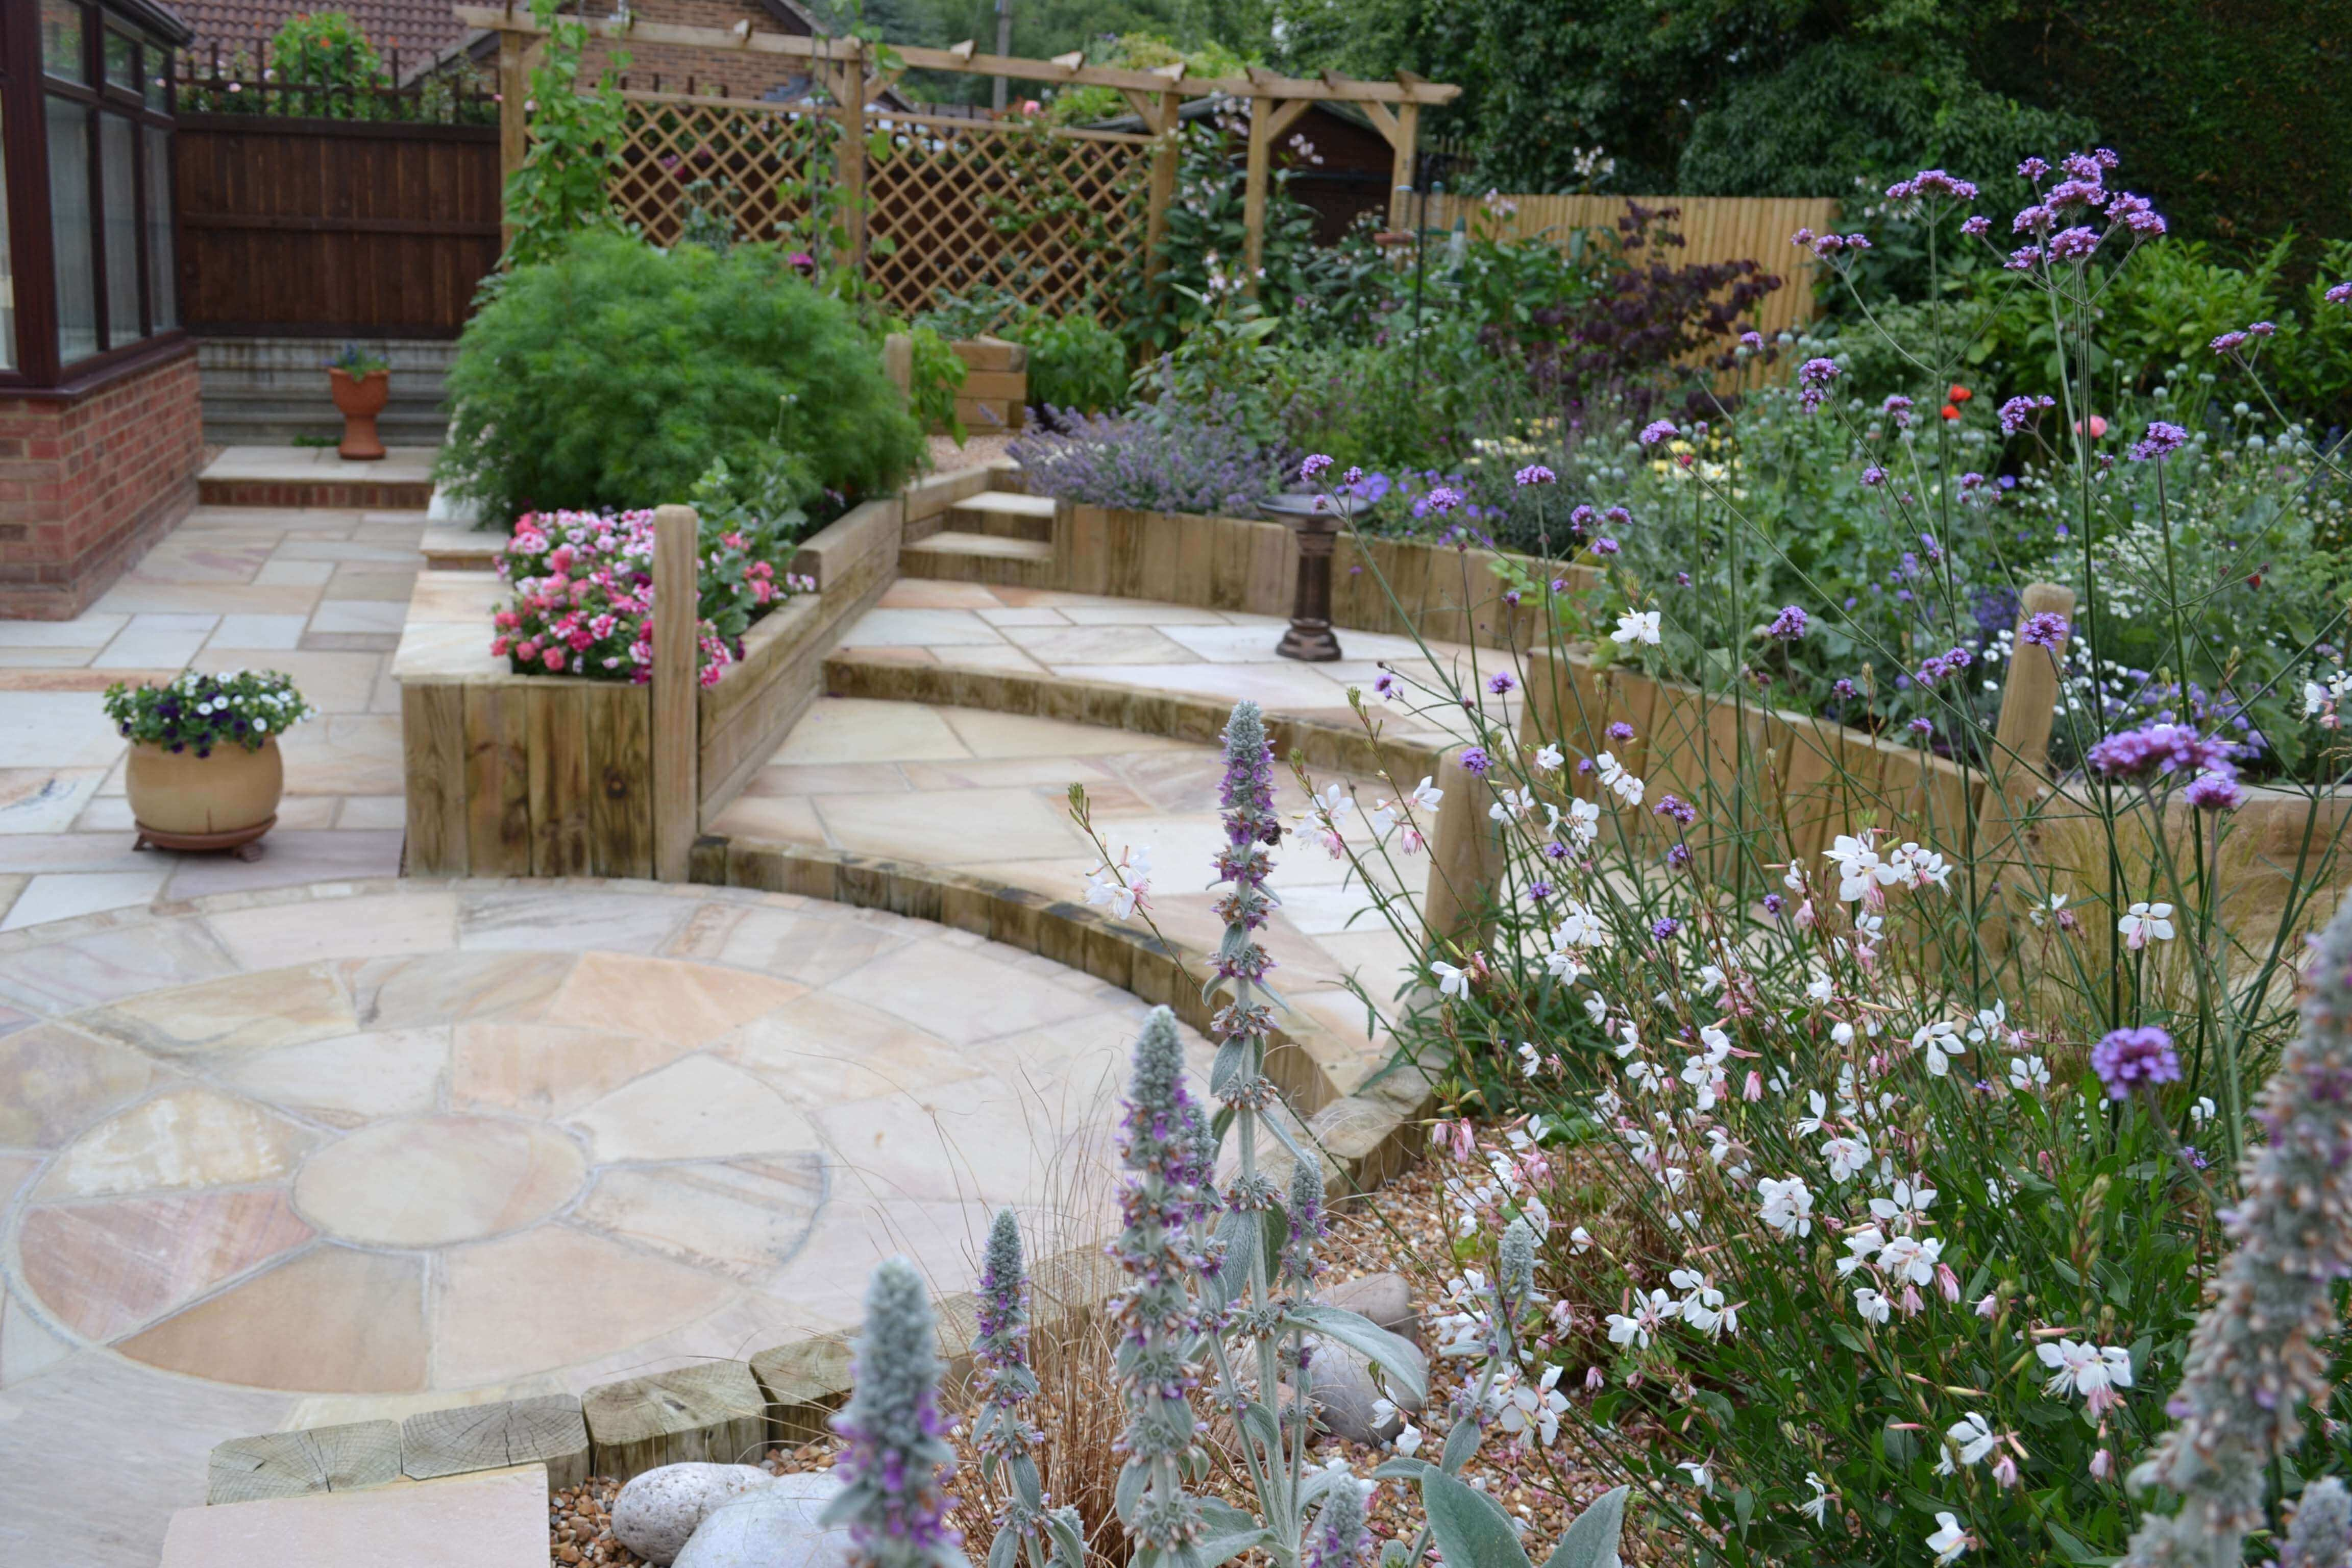 Circular paving surrounded by raised beds